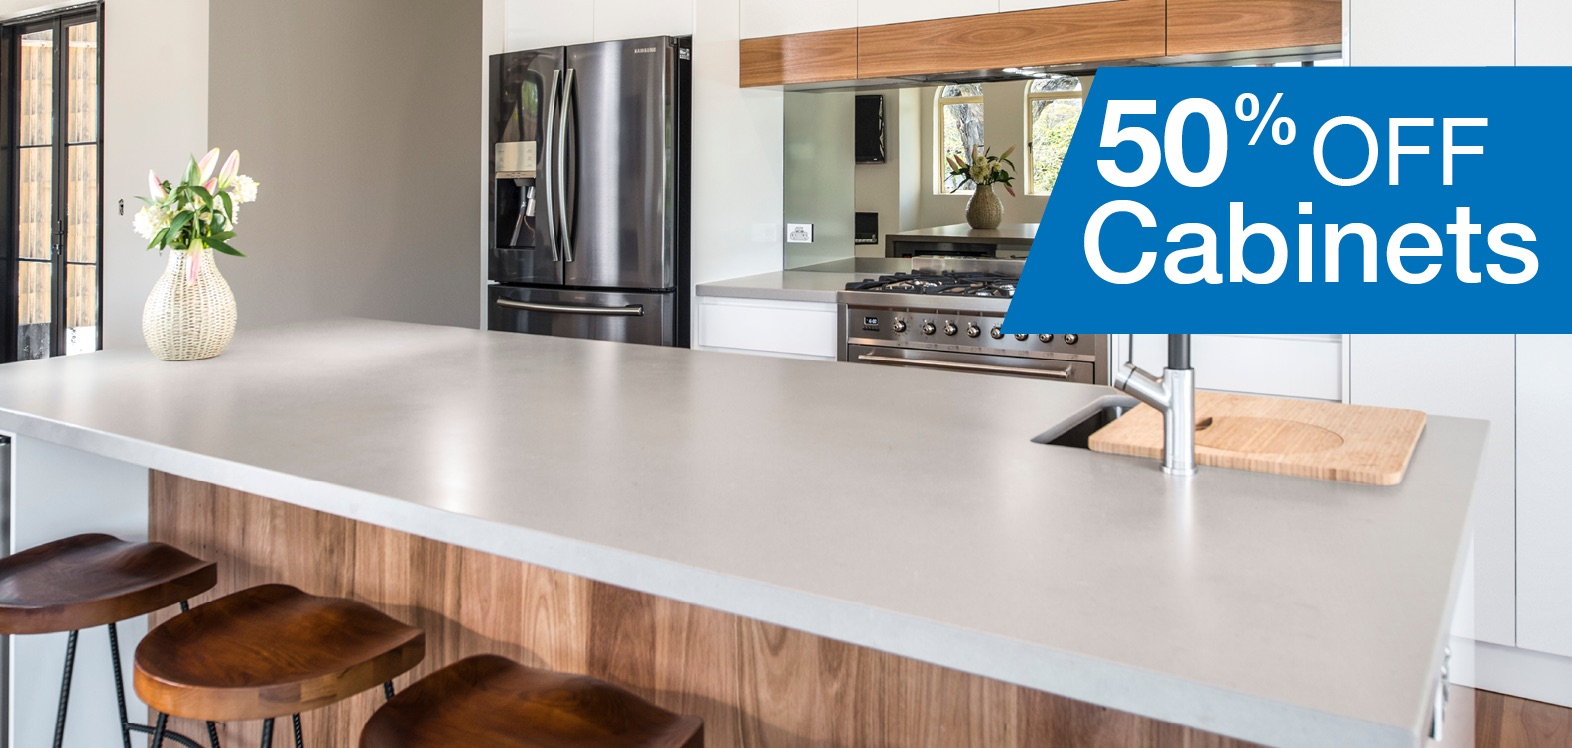 New kitchens sale offer wallspan kitchens adelaide for Kitchen cabinets 50 off